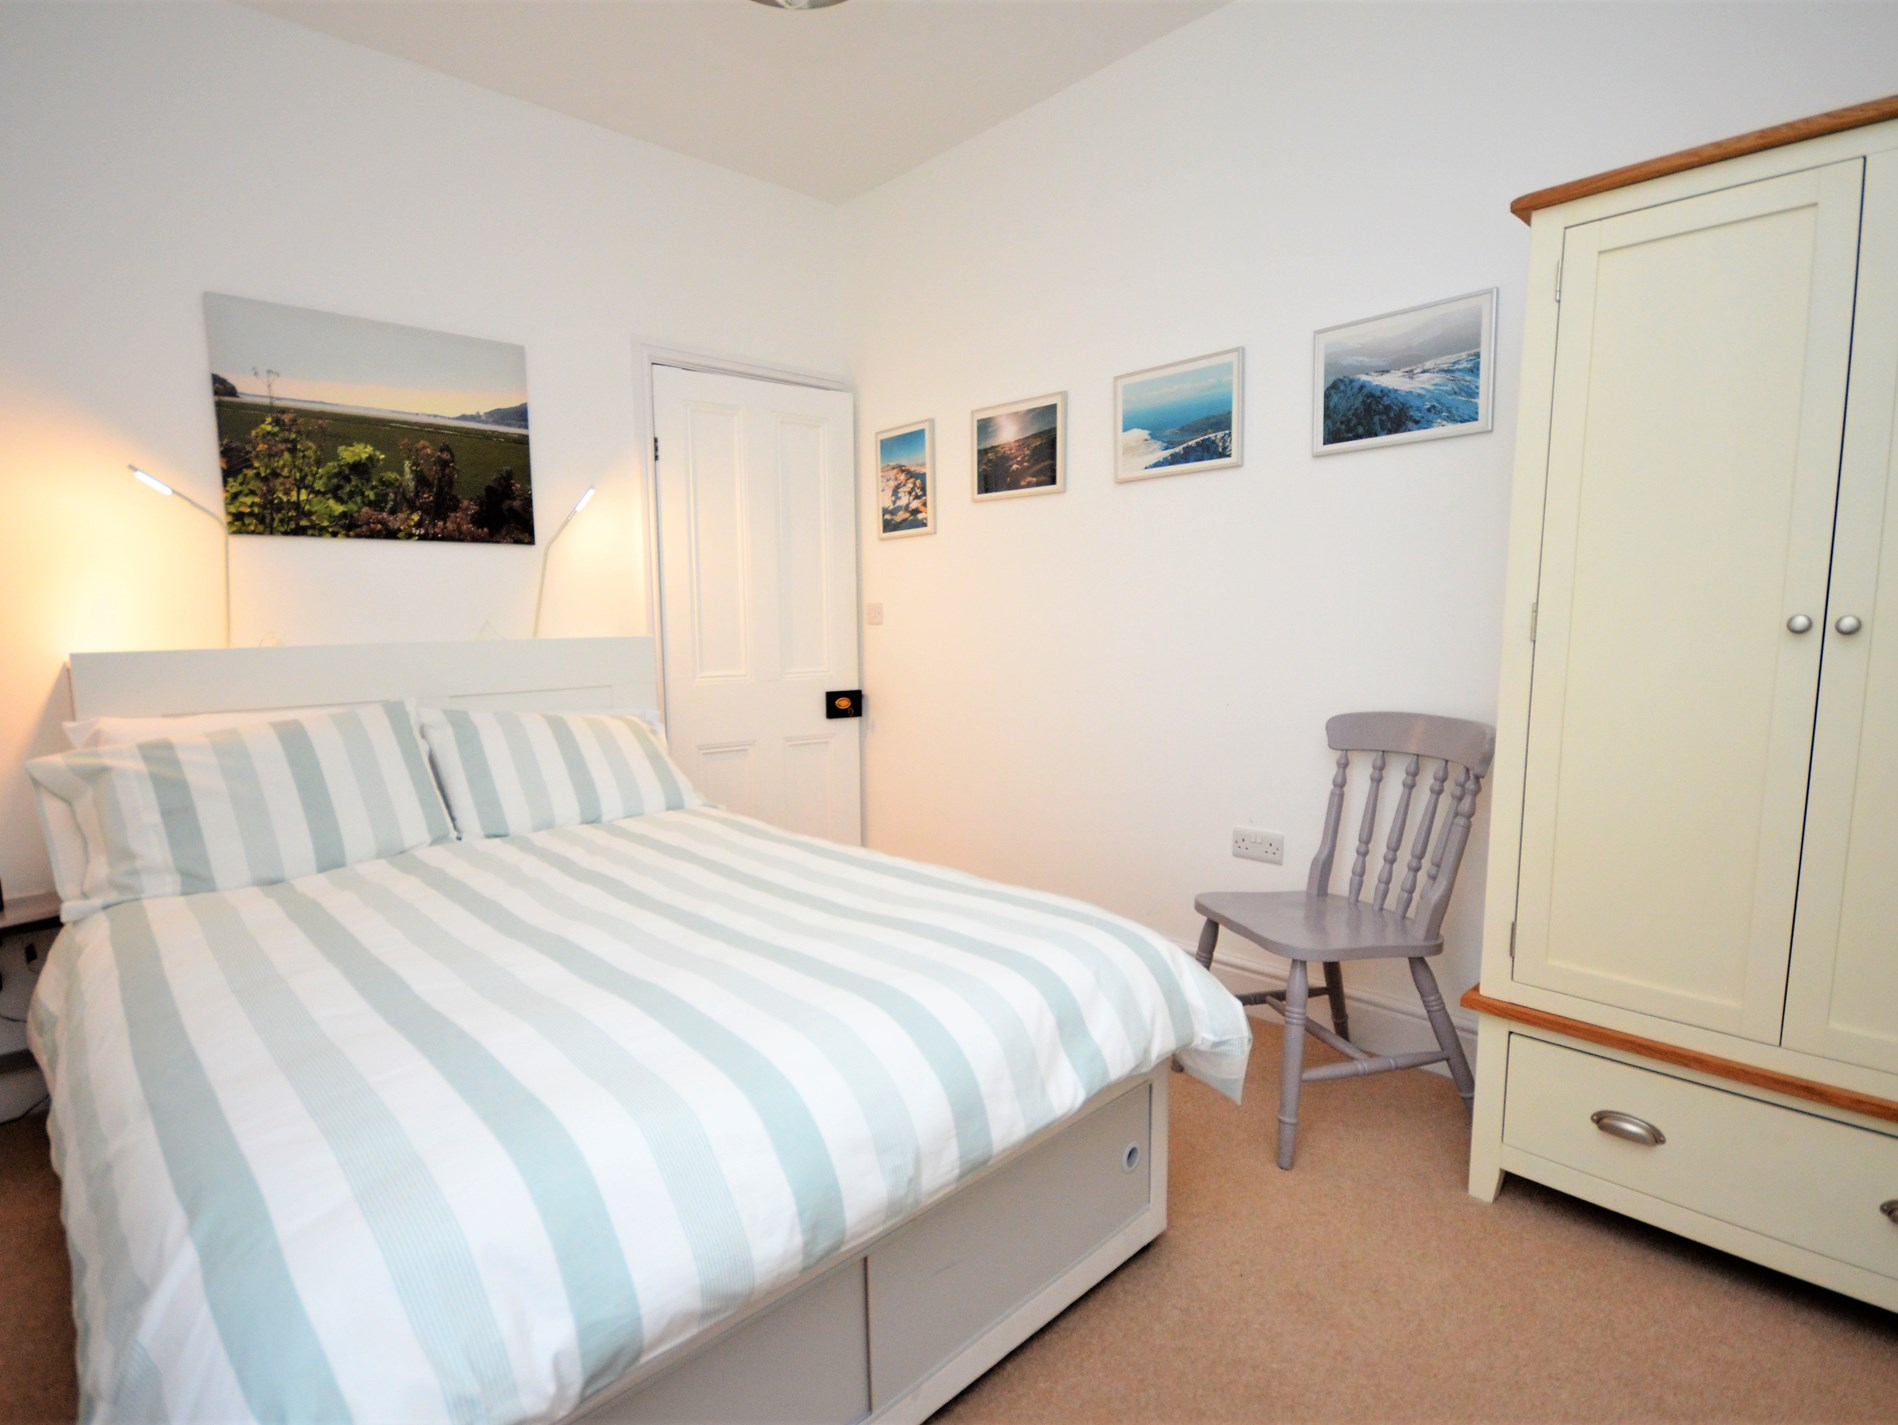 4 Bedroom Cottage in Fairbourne, Snowdonia, North Wales and Cheshire